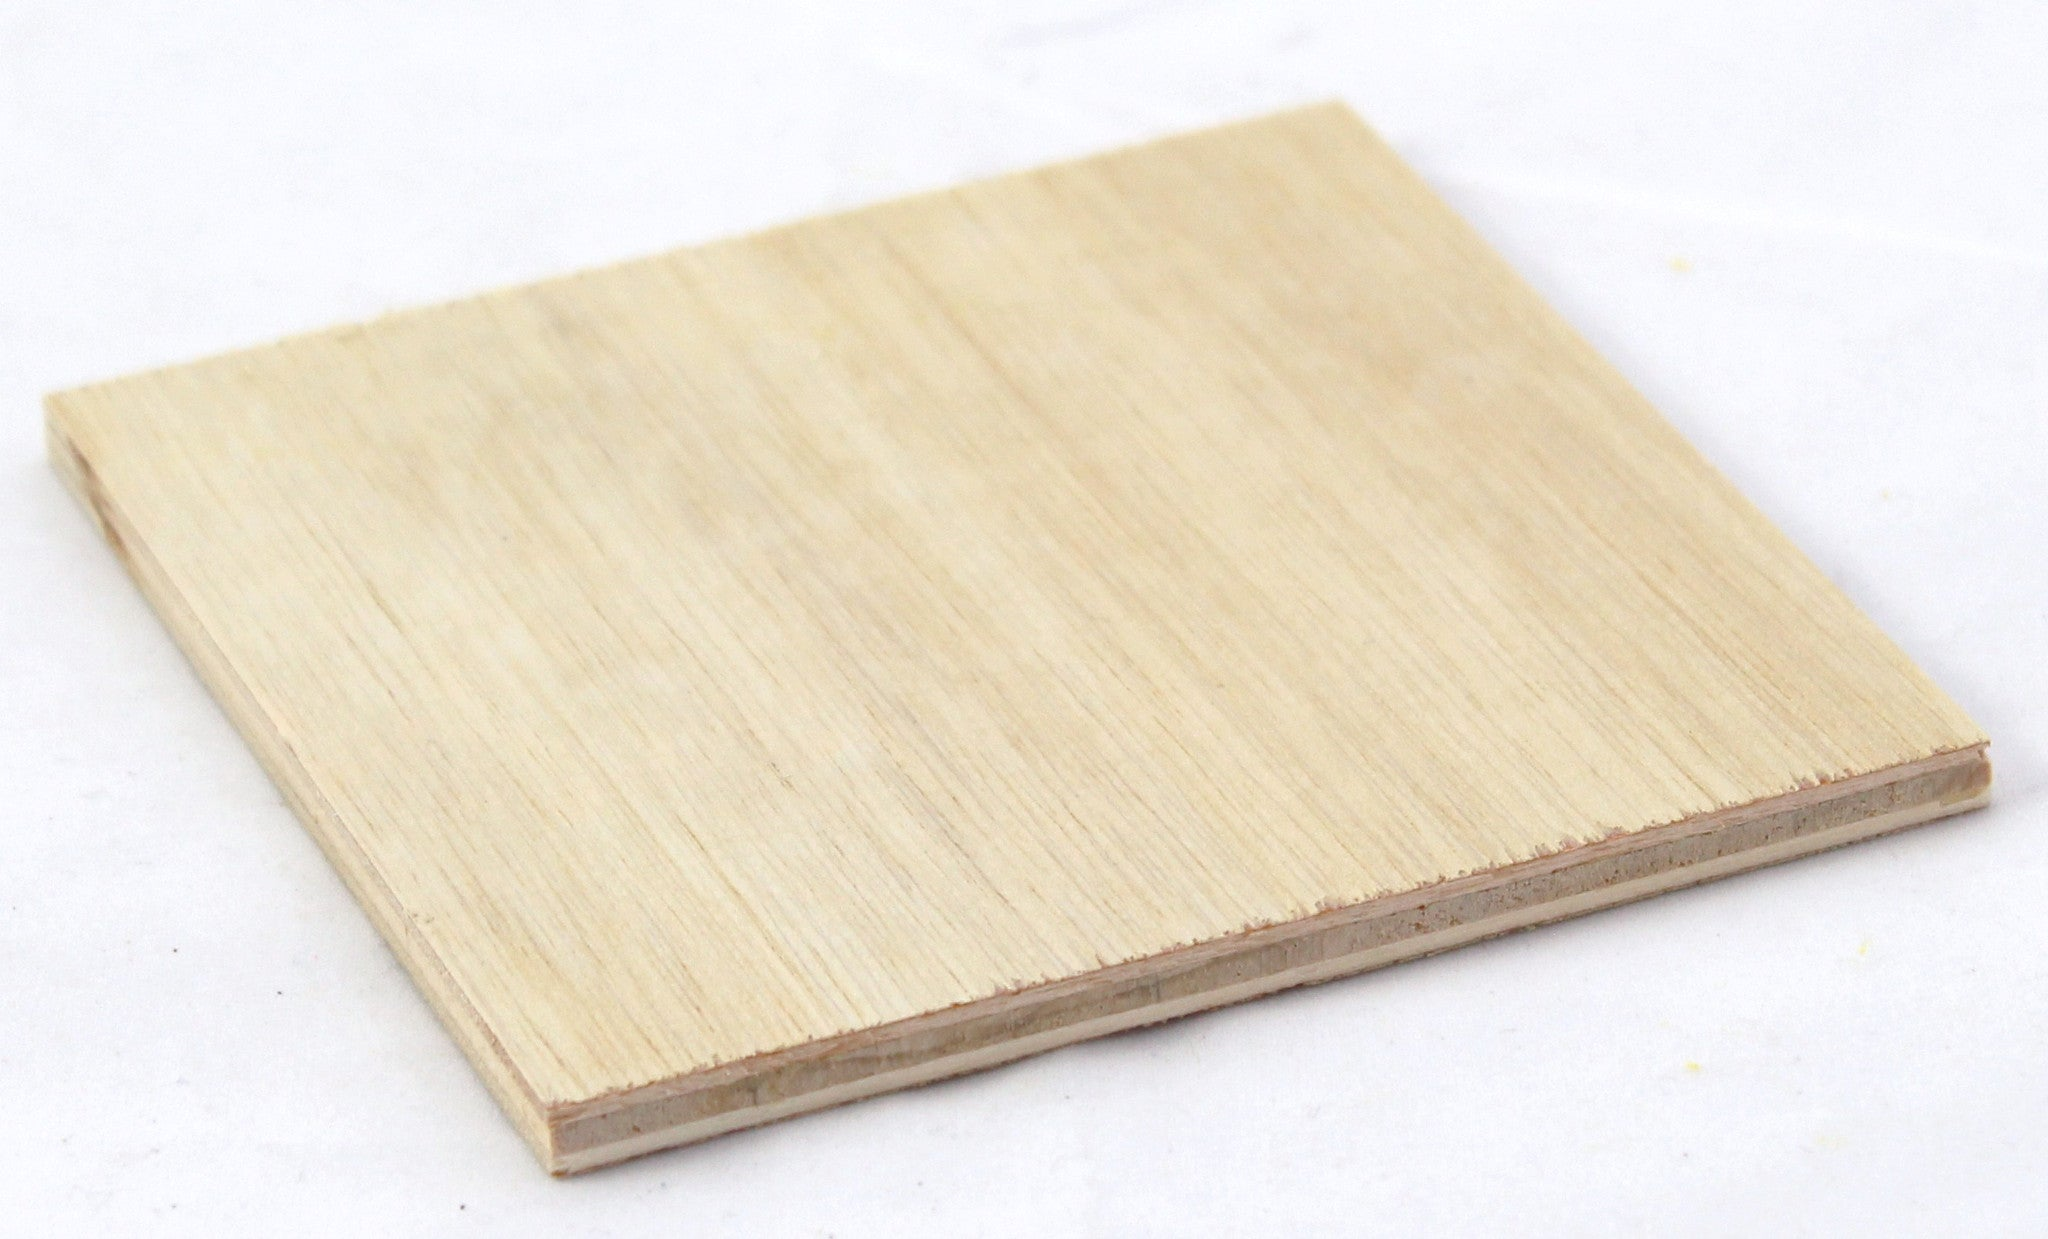 Board Wooden 4x4 Home Educational Resources